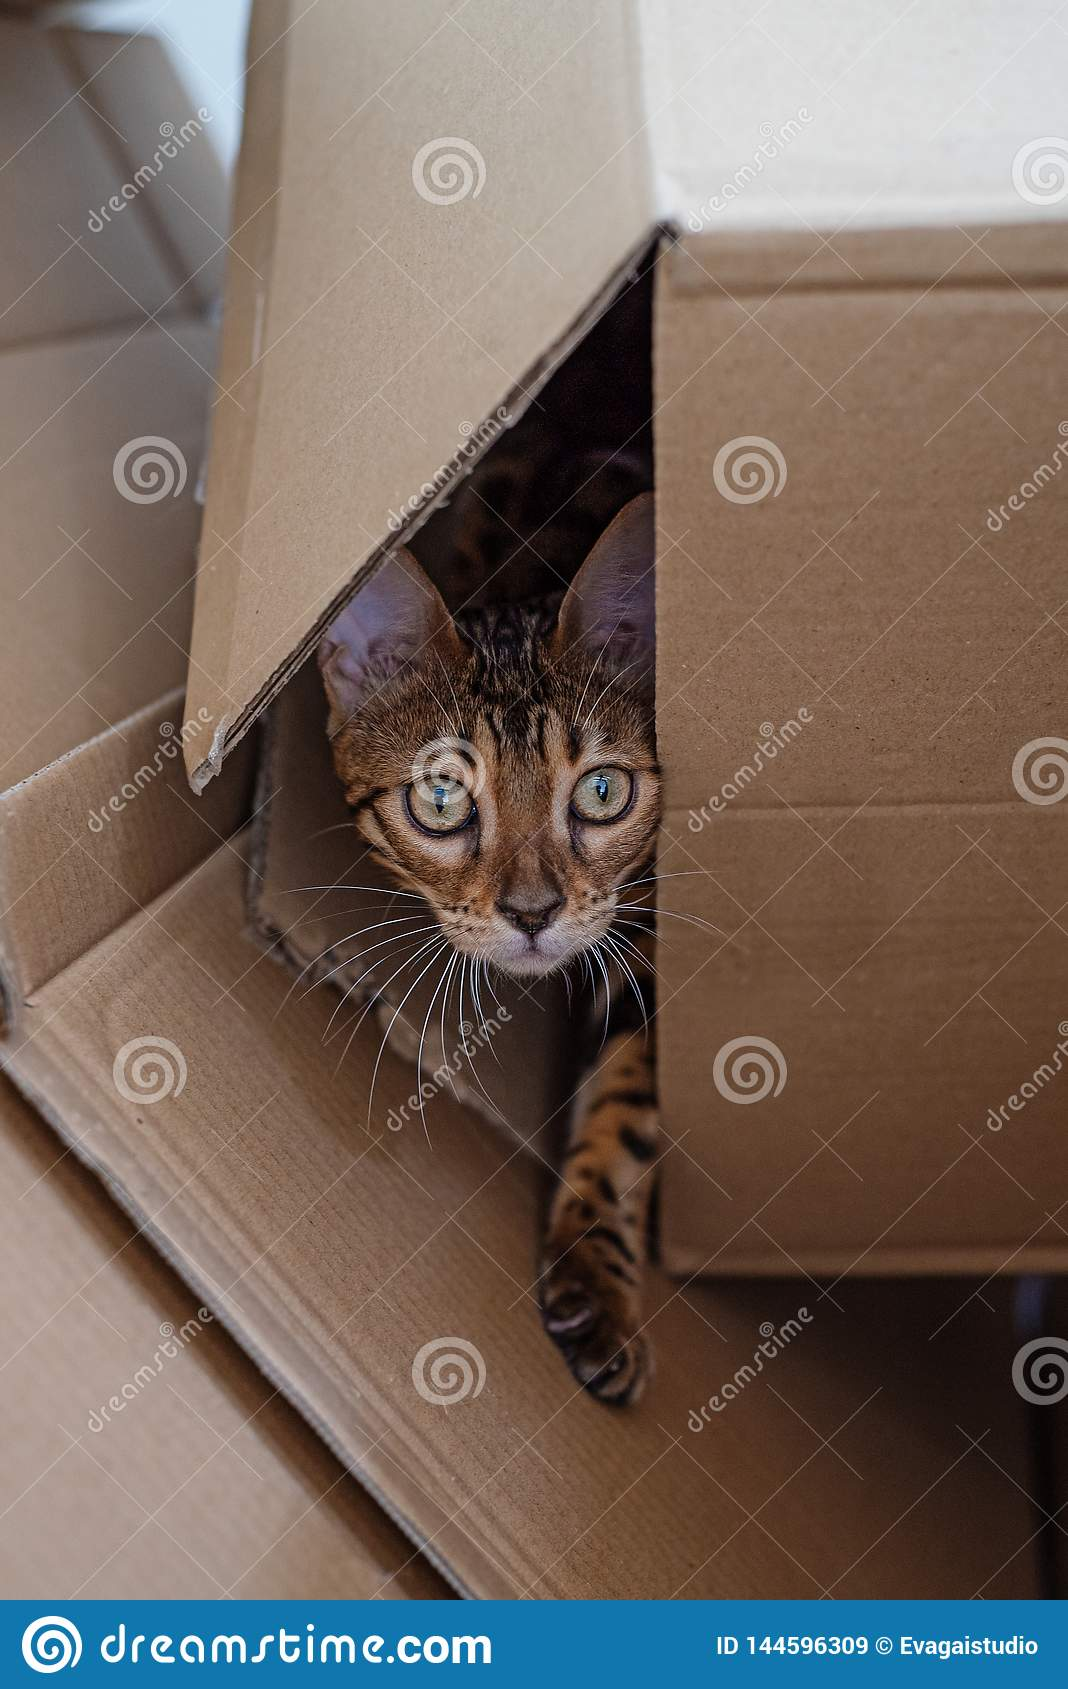 Bengal kitten looks out of the cardboard box